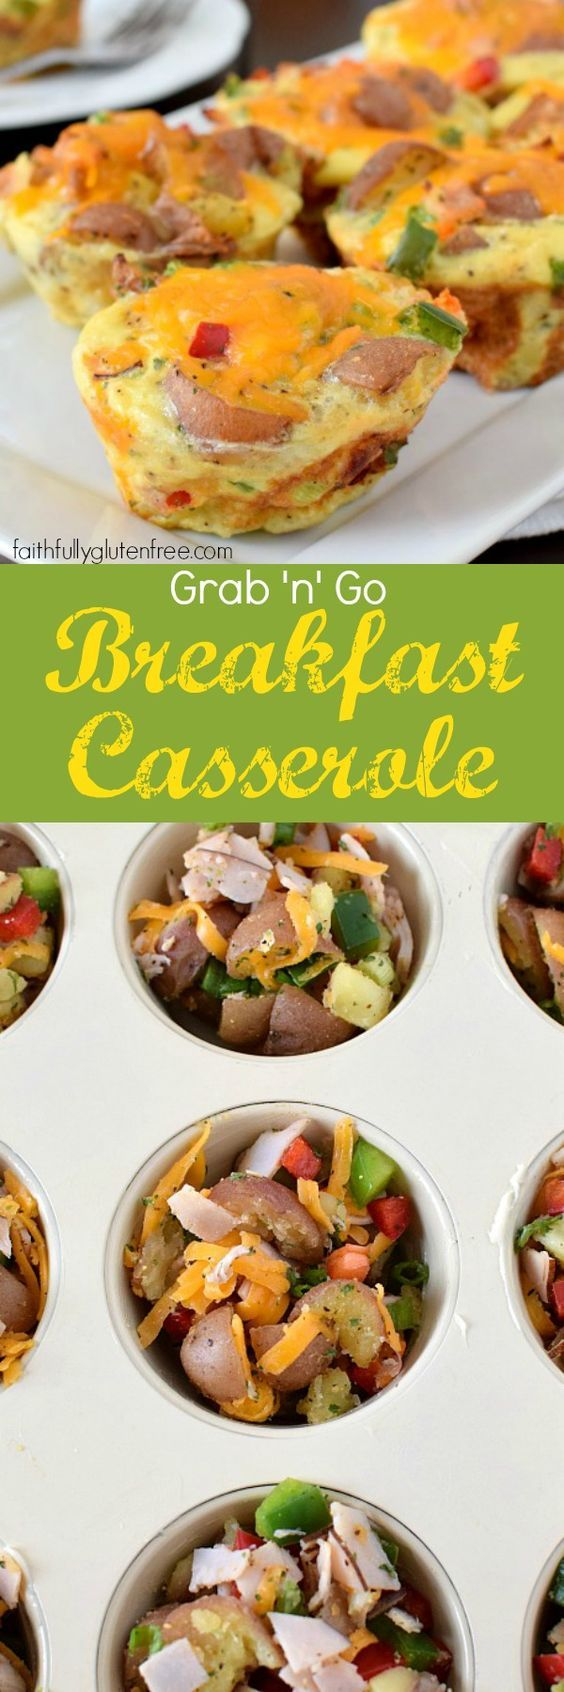 Have a hearty breakfast any day of the week with this Grab and Go Breakfast Casserole